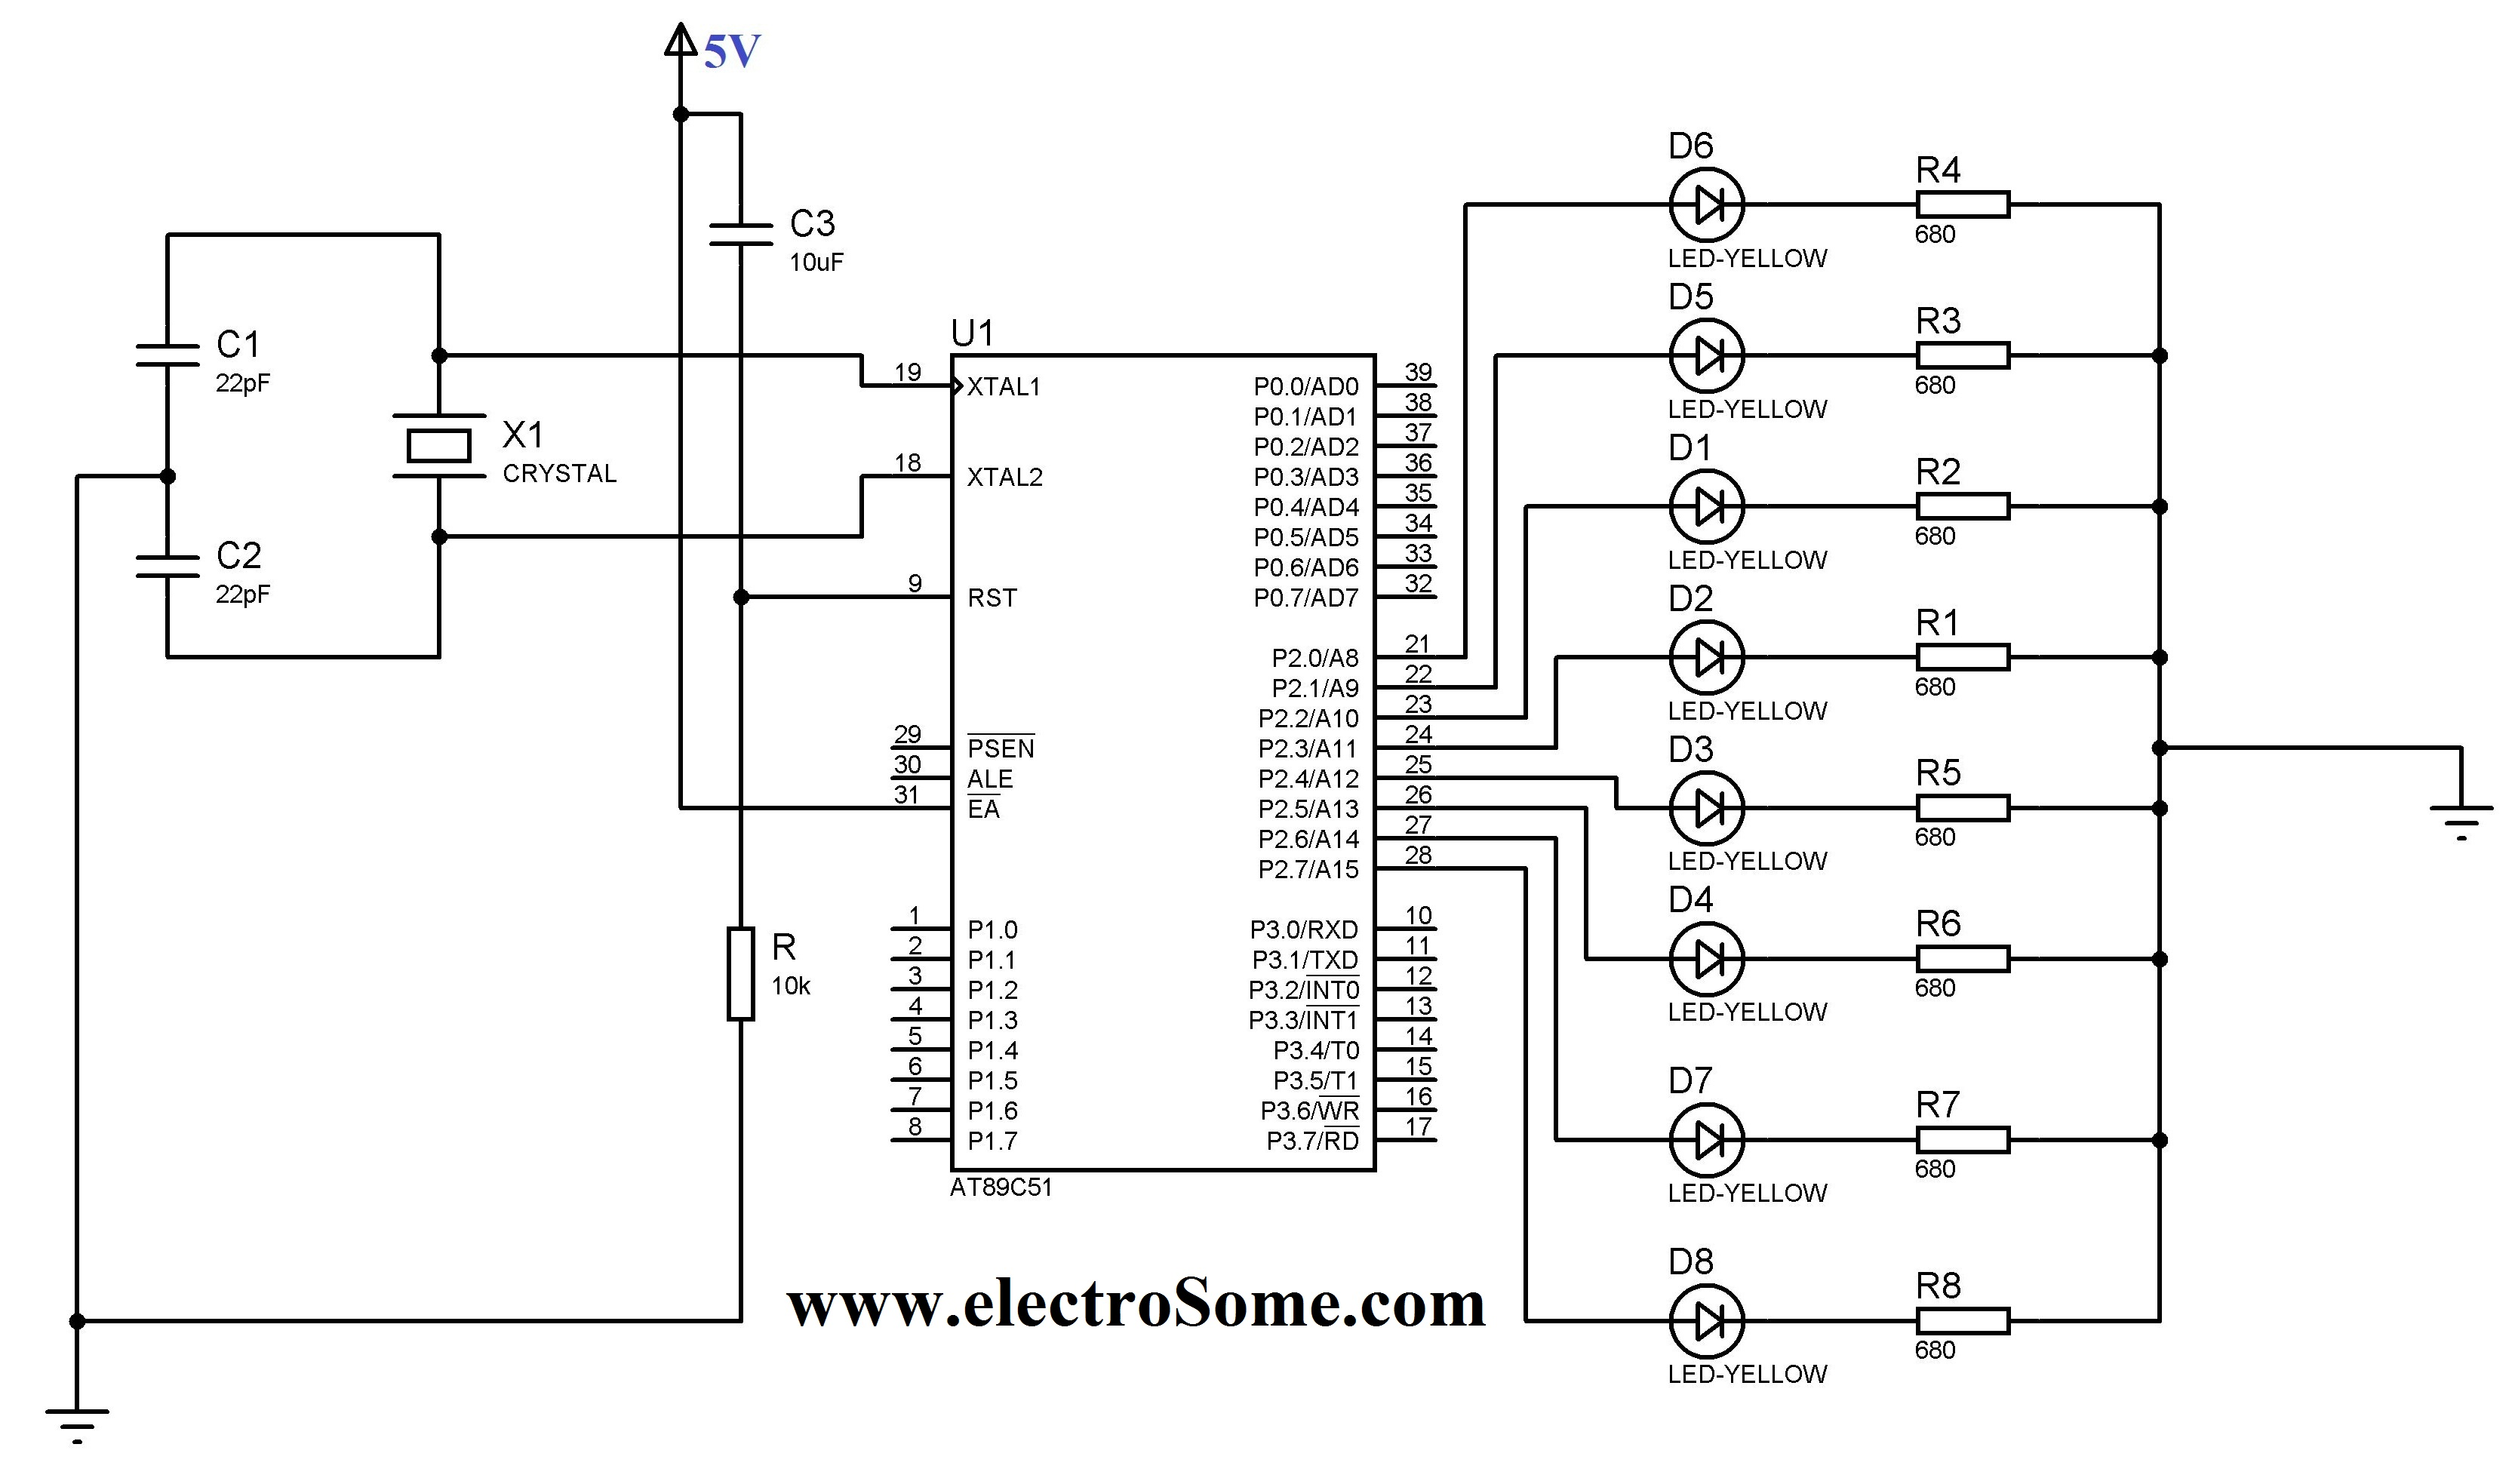 Led Blinking Microcontroller Keil C Tutorial At89c51